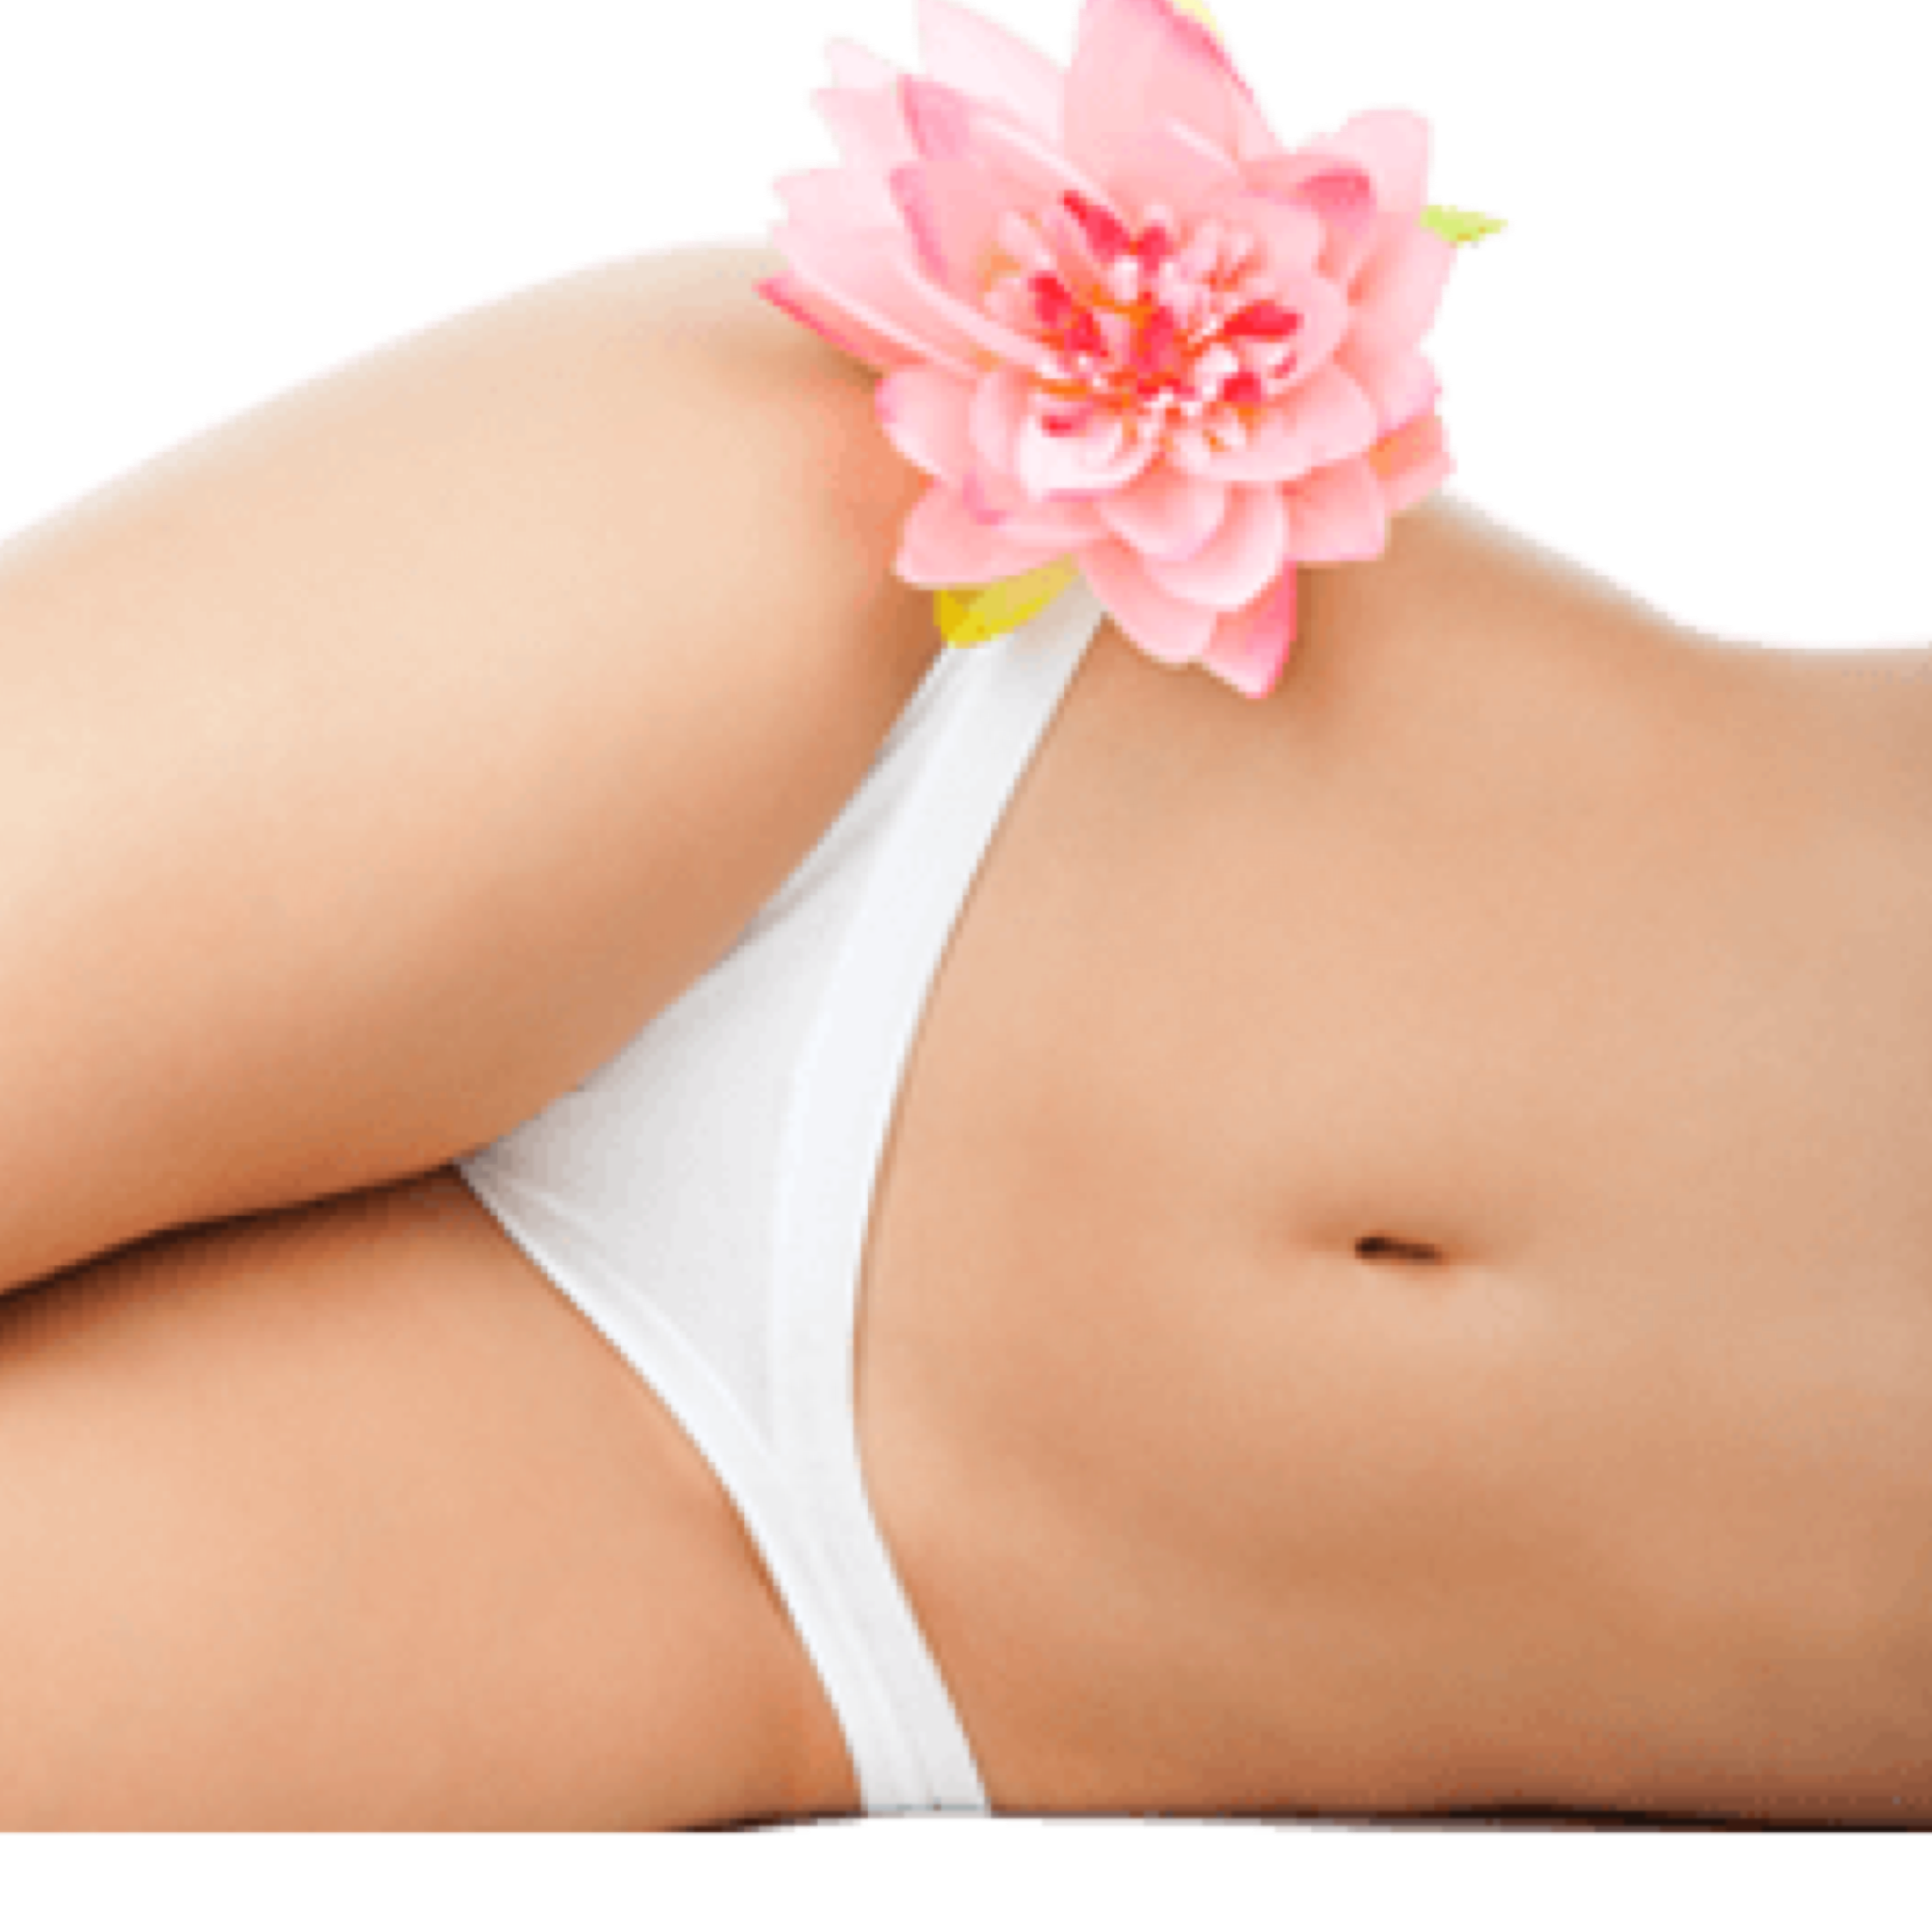 Beautiful Tummy after tummy Tuck